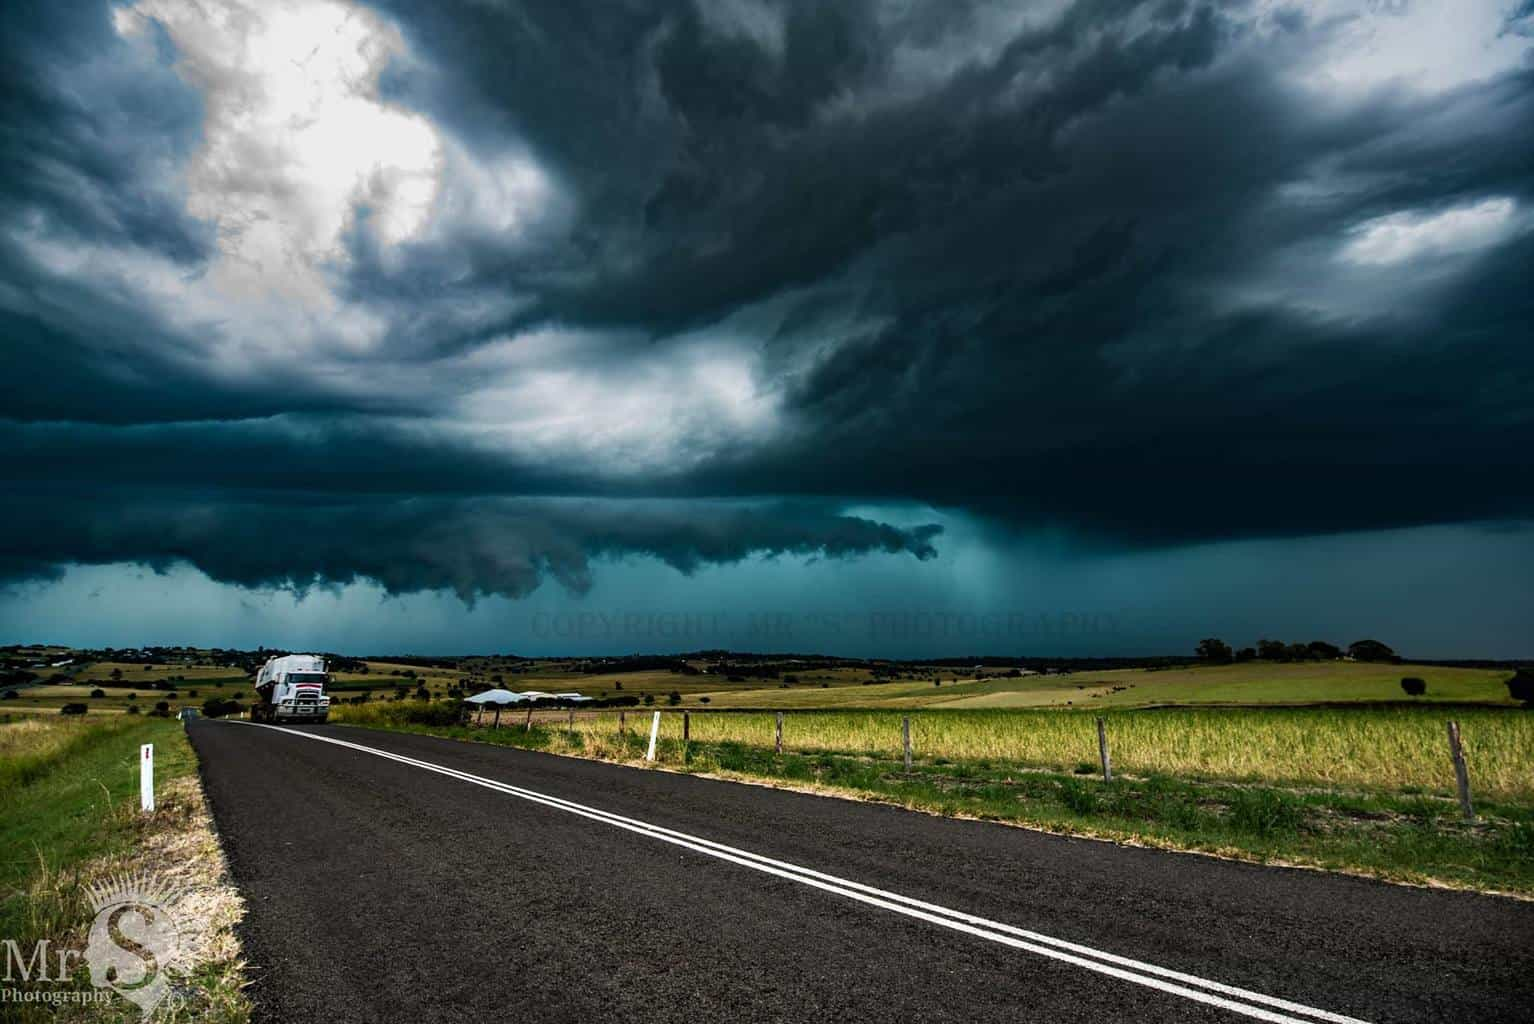 !! Keep on Truckin !! A truck passes by as it just avoids a severe warned cell as it approaches Boonah Qld Australia on the 29th Jan. It was a brilliant storm chase.